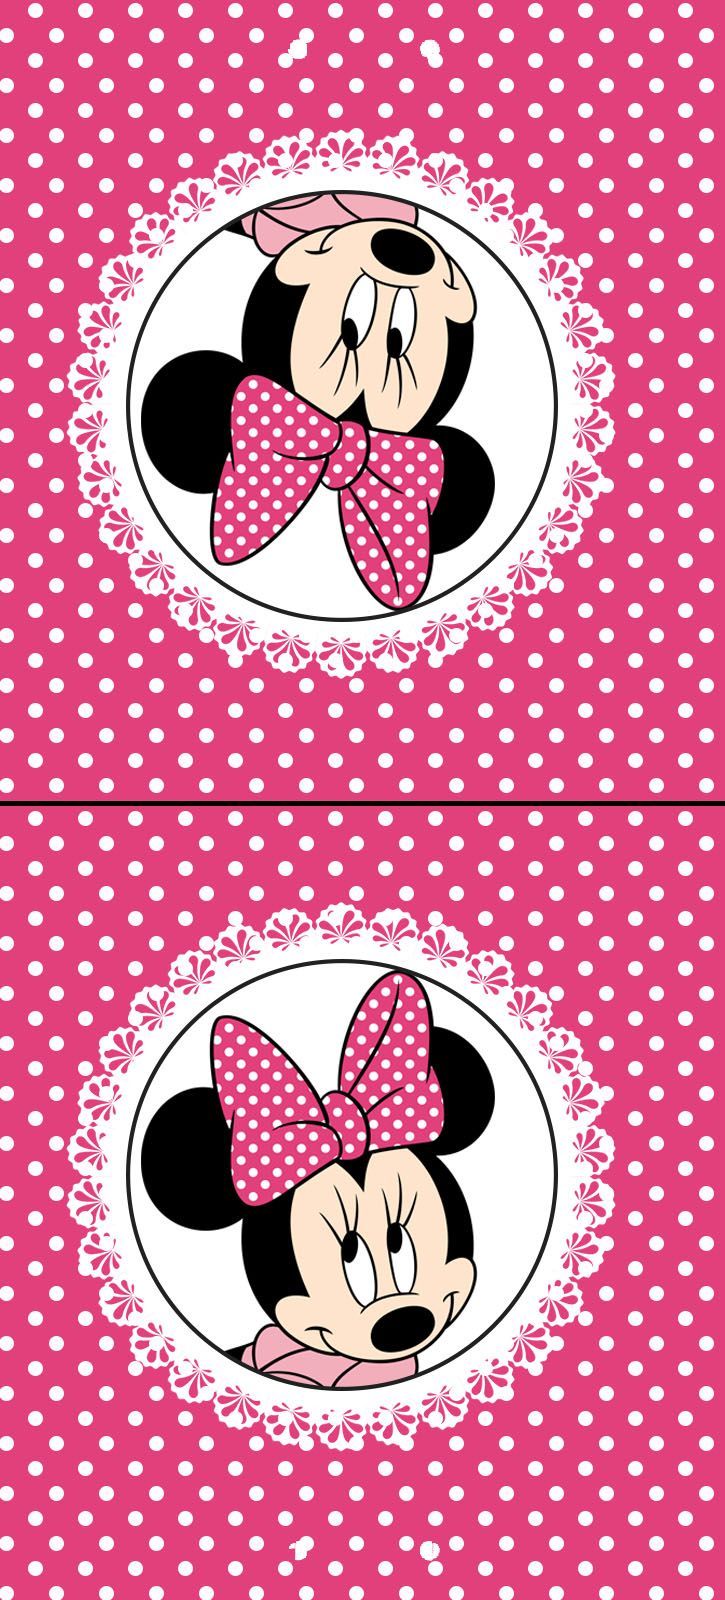 Uncategorized Sketches Of Minnie Mouse 745 best minnie mouse images on pinterest mice beautiful and daisy kit festa pronta rosa para baixar